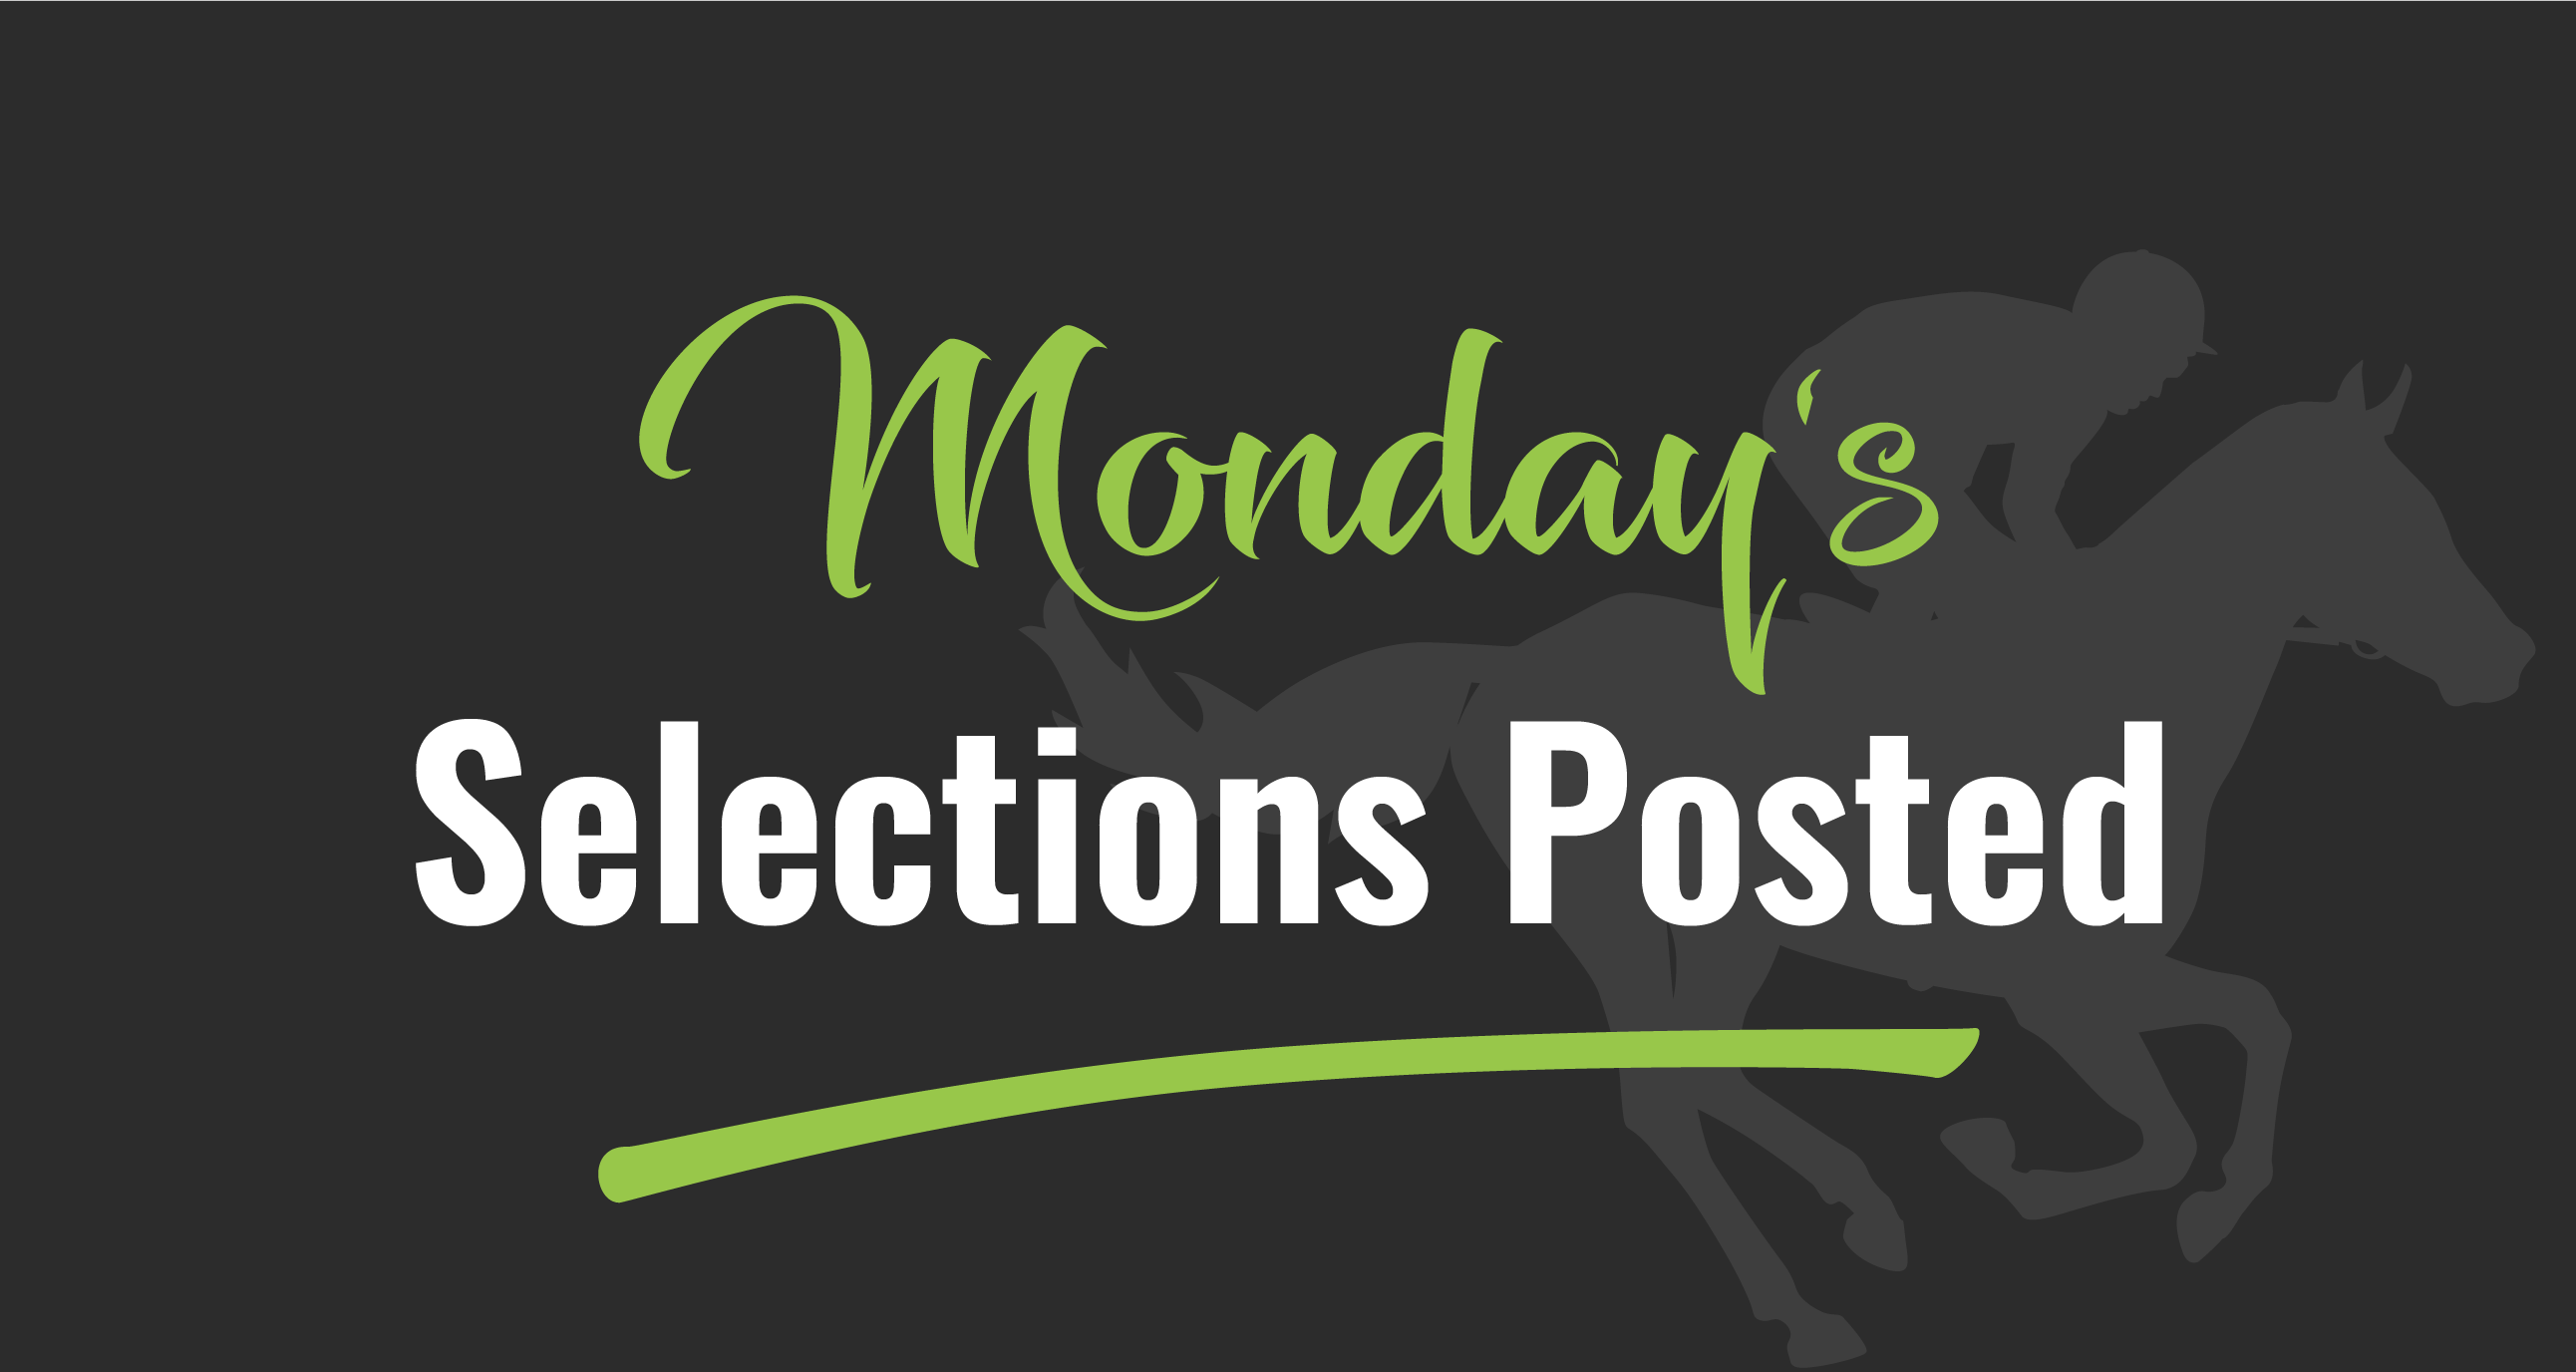 Selections for Monday 22 July 2019